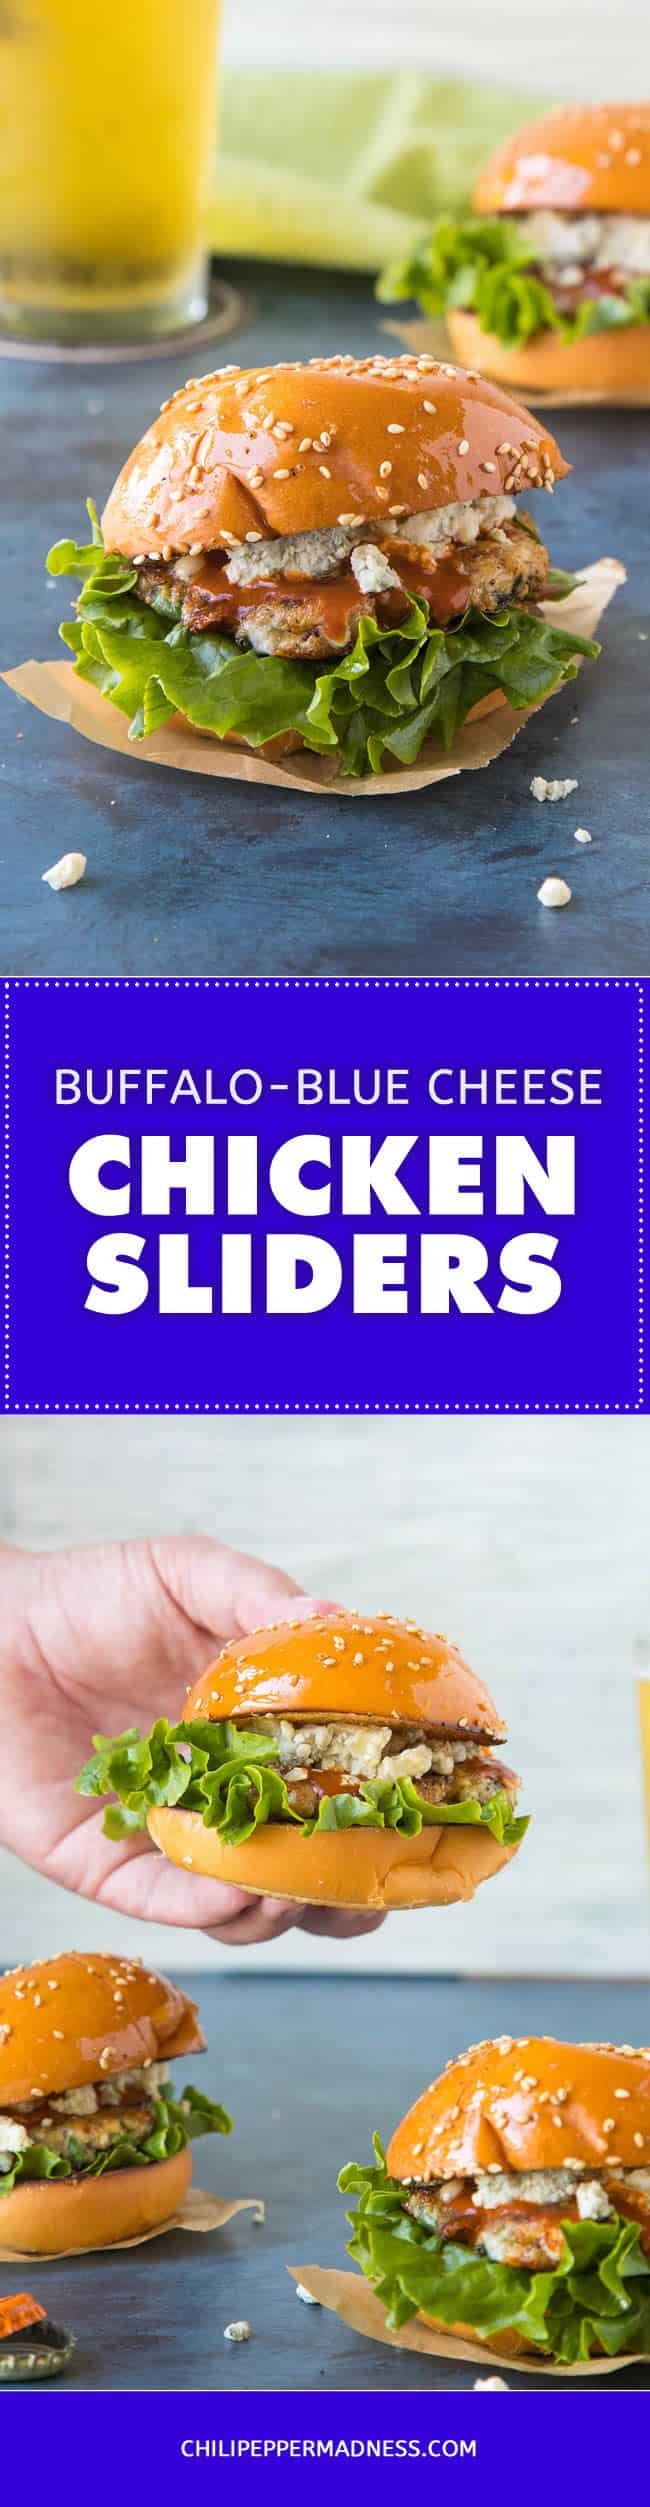 Buffalo Blue Cheese Chicken Sliders - Recipe | ChiliPepperMadness.com #sliders #appetizer #burger #chickenslider #chickenburger #gameday #partyfood